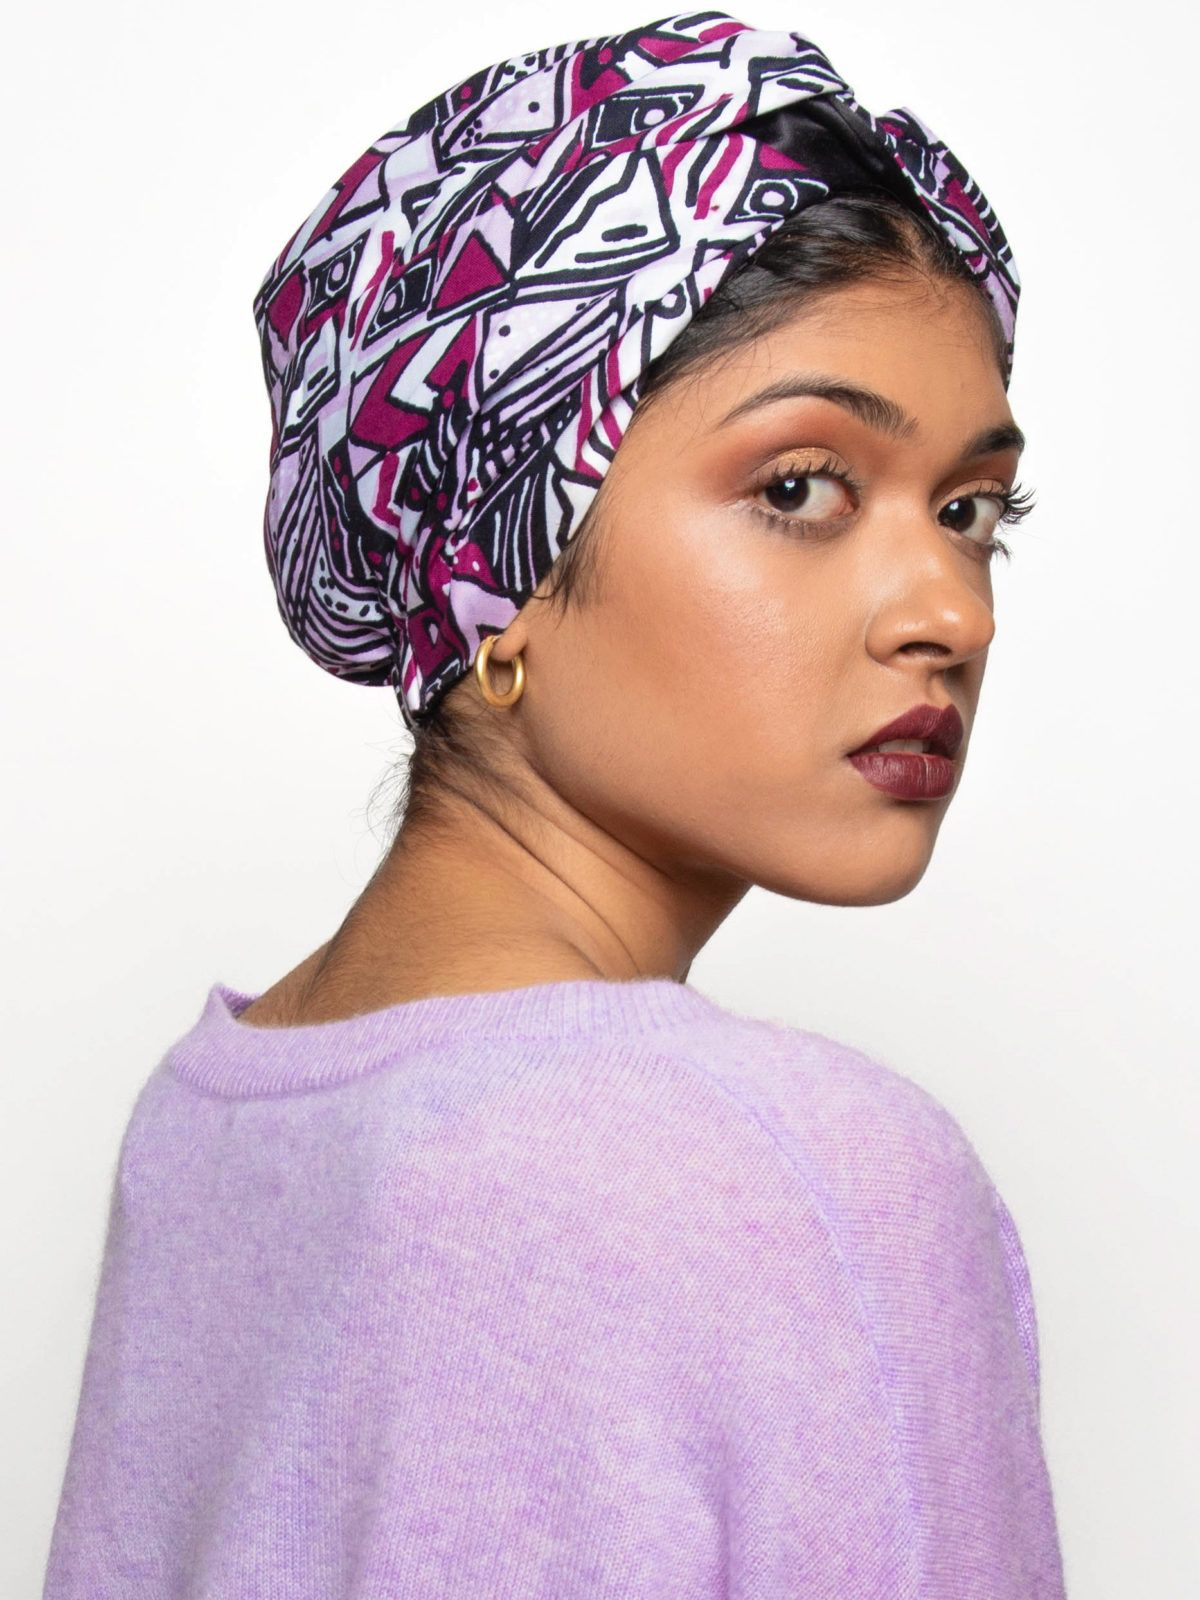 SatinLined Head Wraps & Turbans in 2019